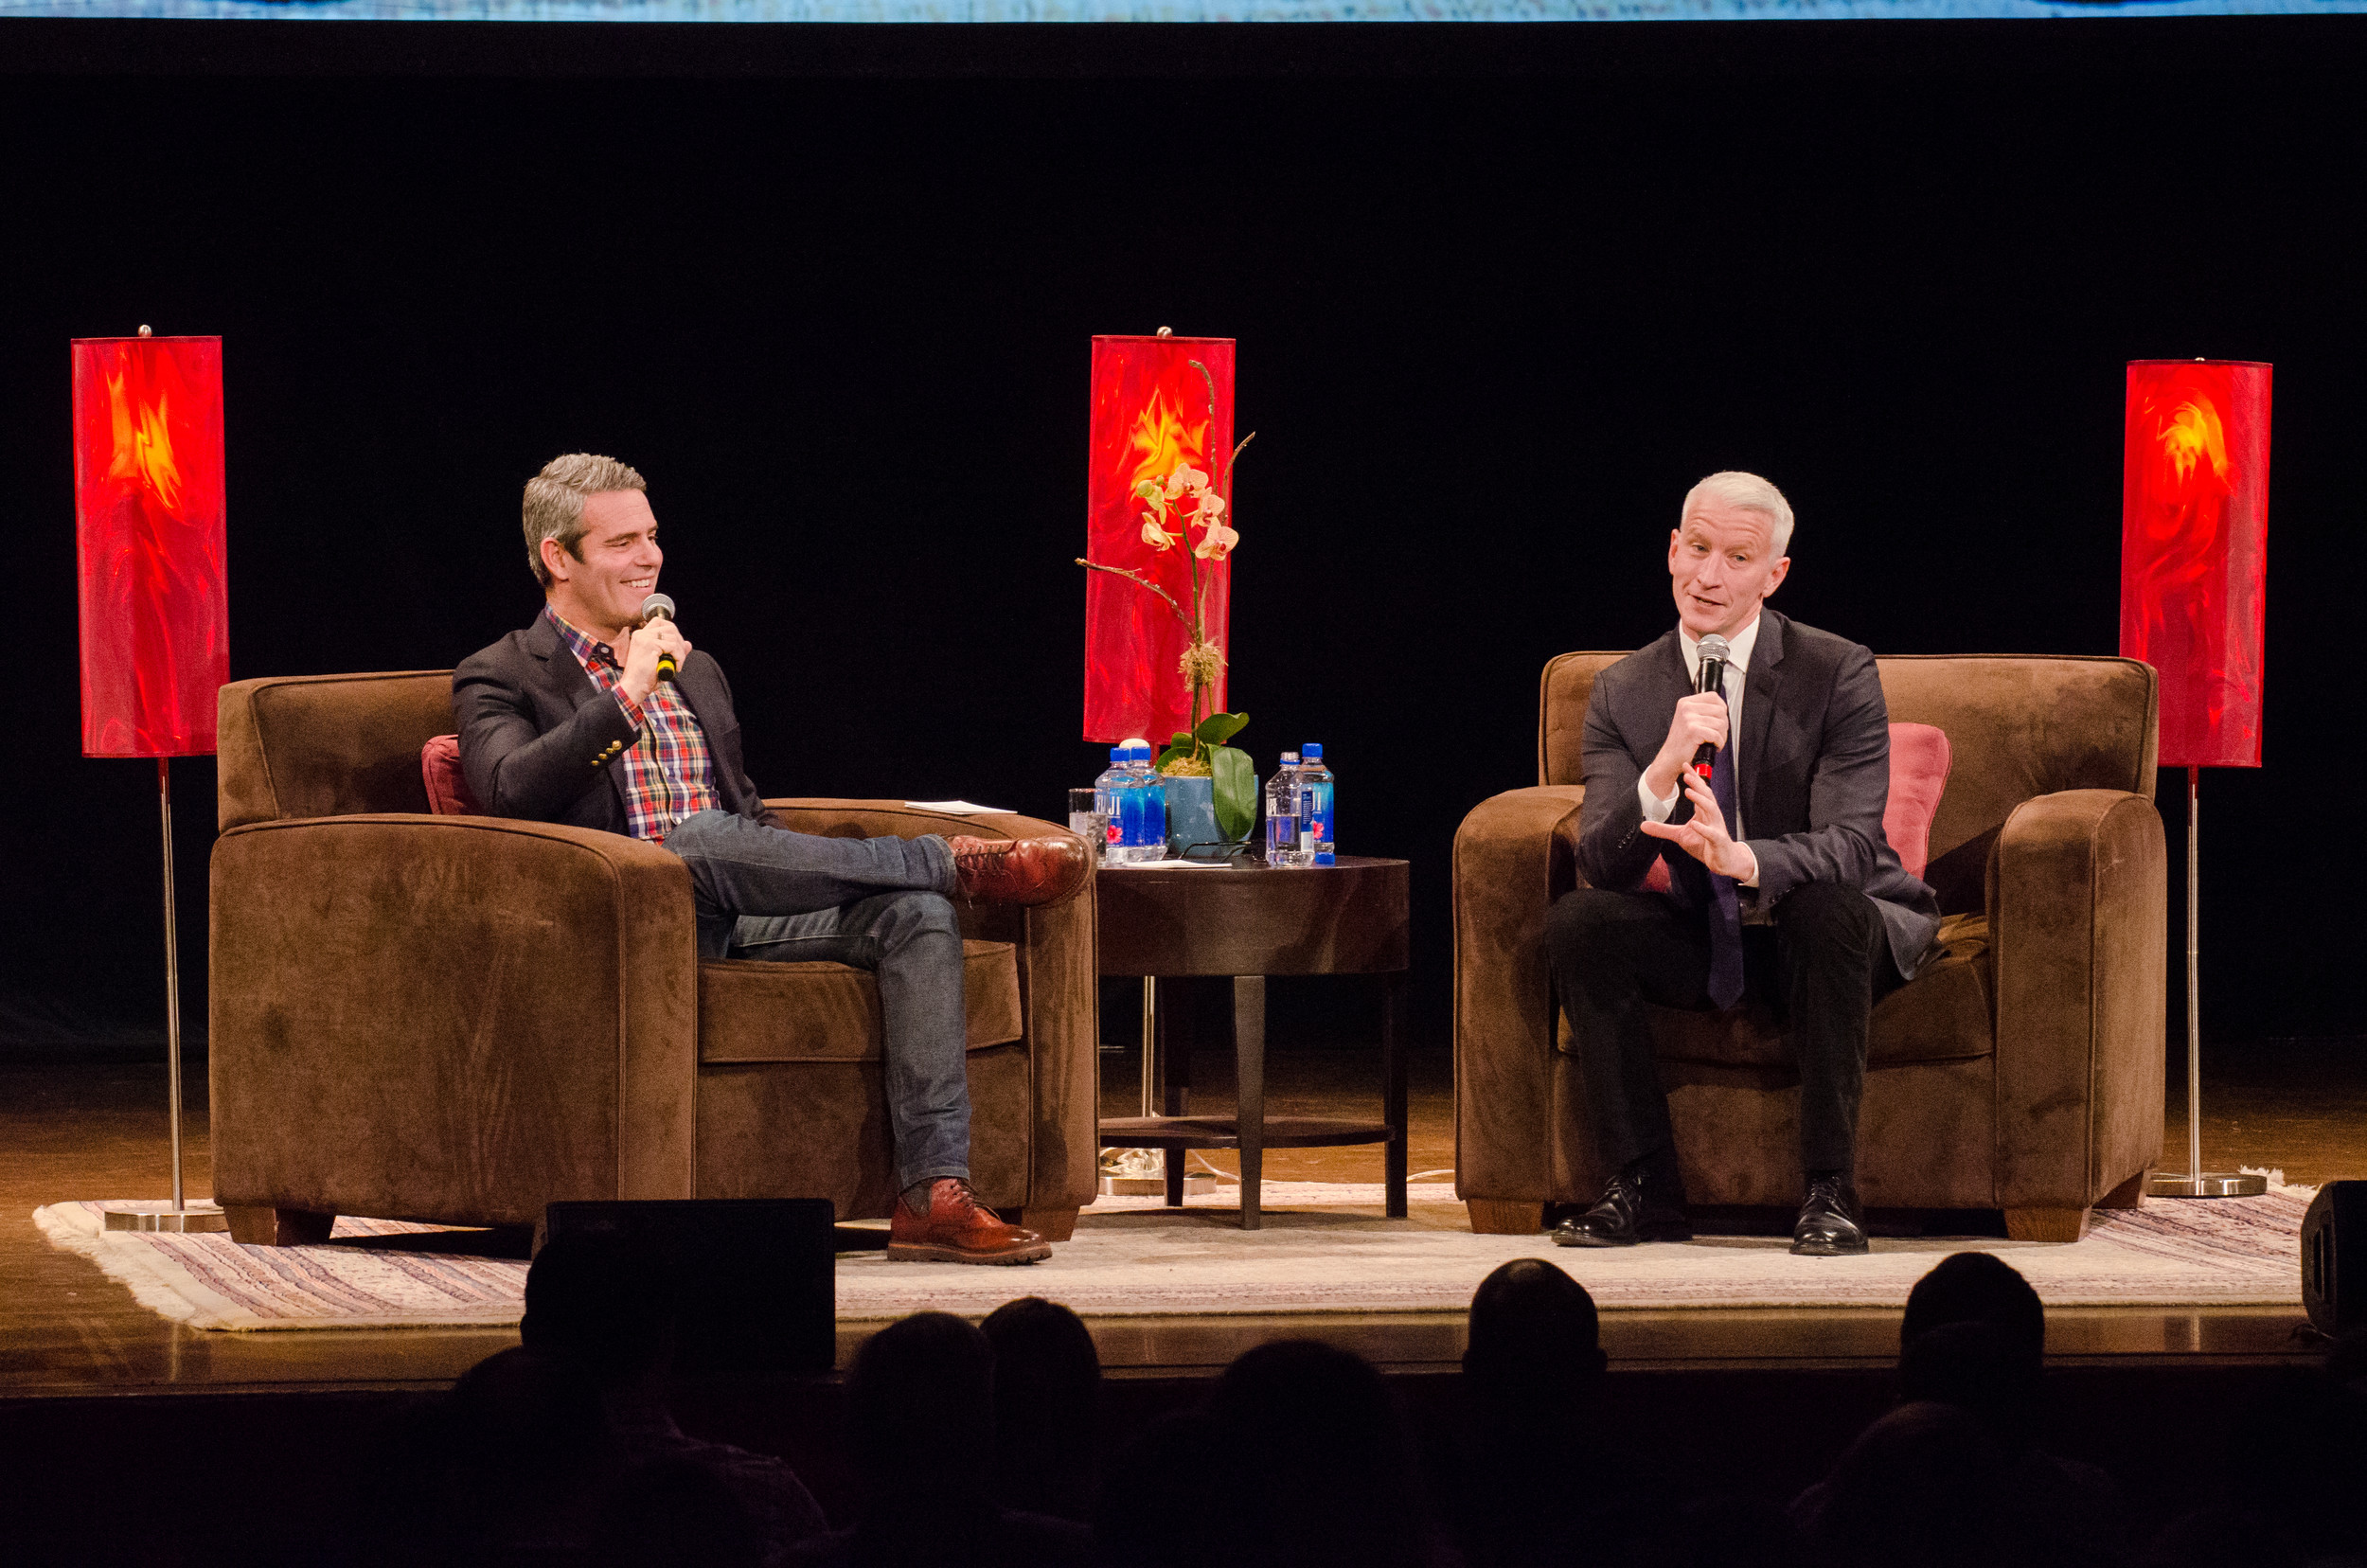 Real Housewives' Andy Cohen and CNN's Anderson Cooper meld minds at PPAC on Saturday, April 29